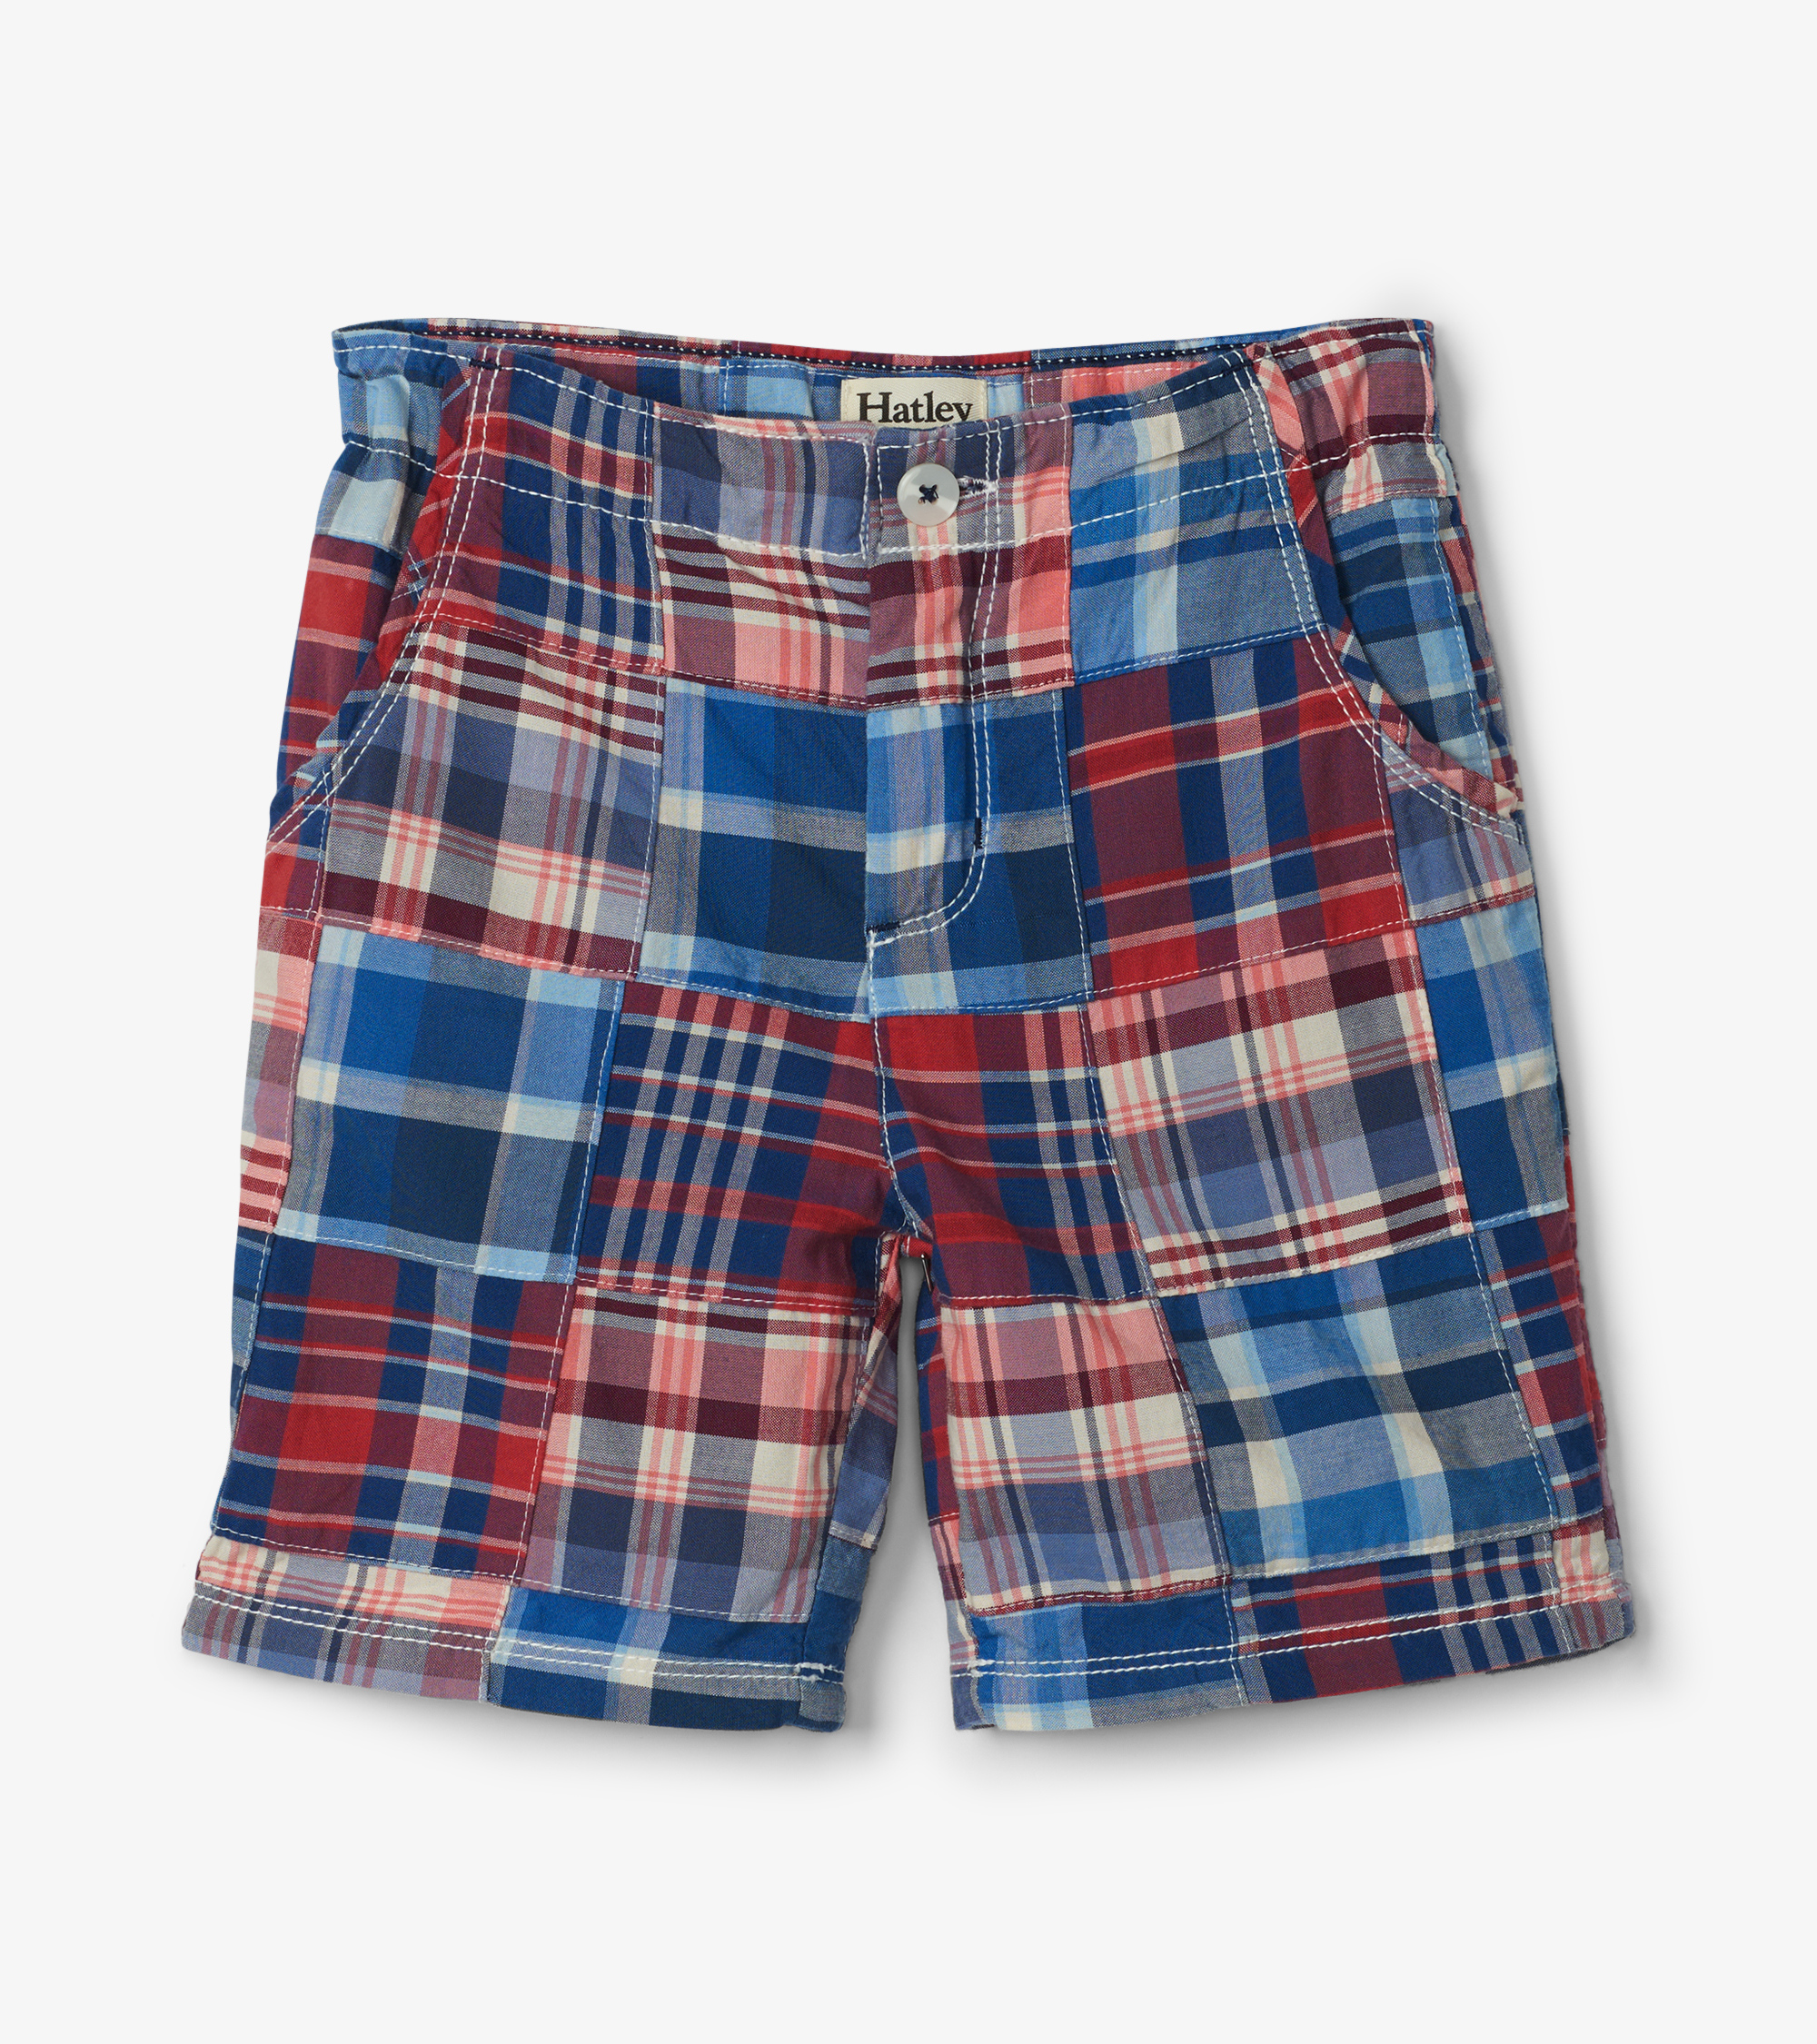 NOW £17 Hatley Madras Plaid Shorts (was £25)